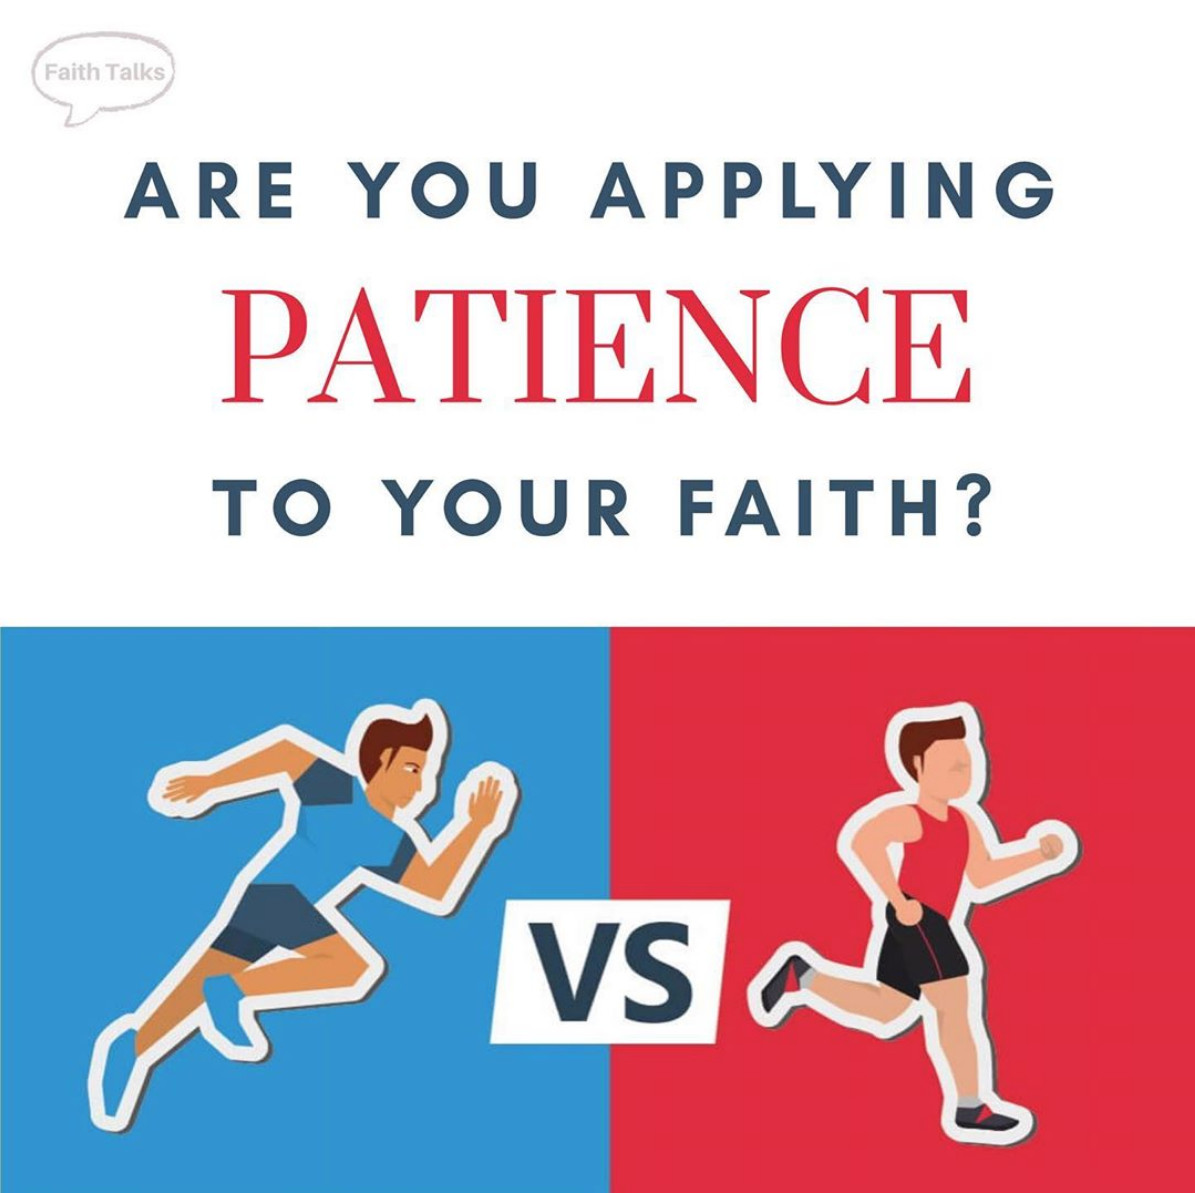 Are you applying patience to your faith?